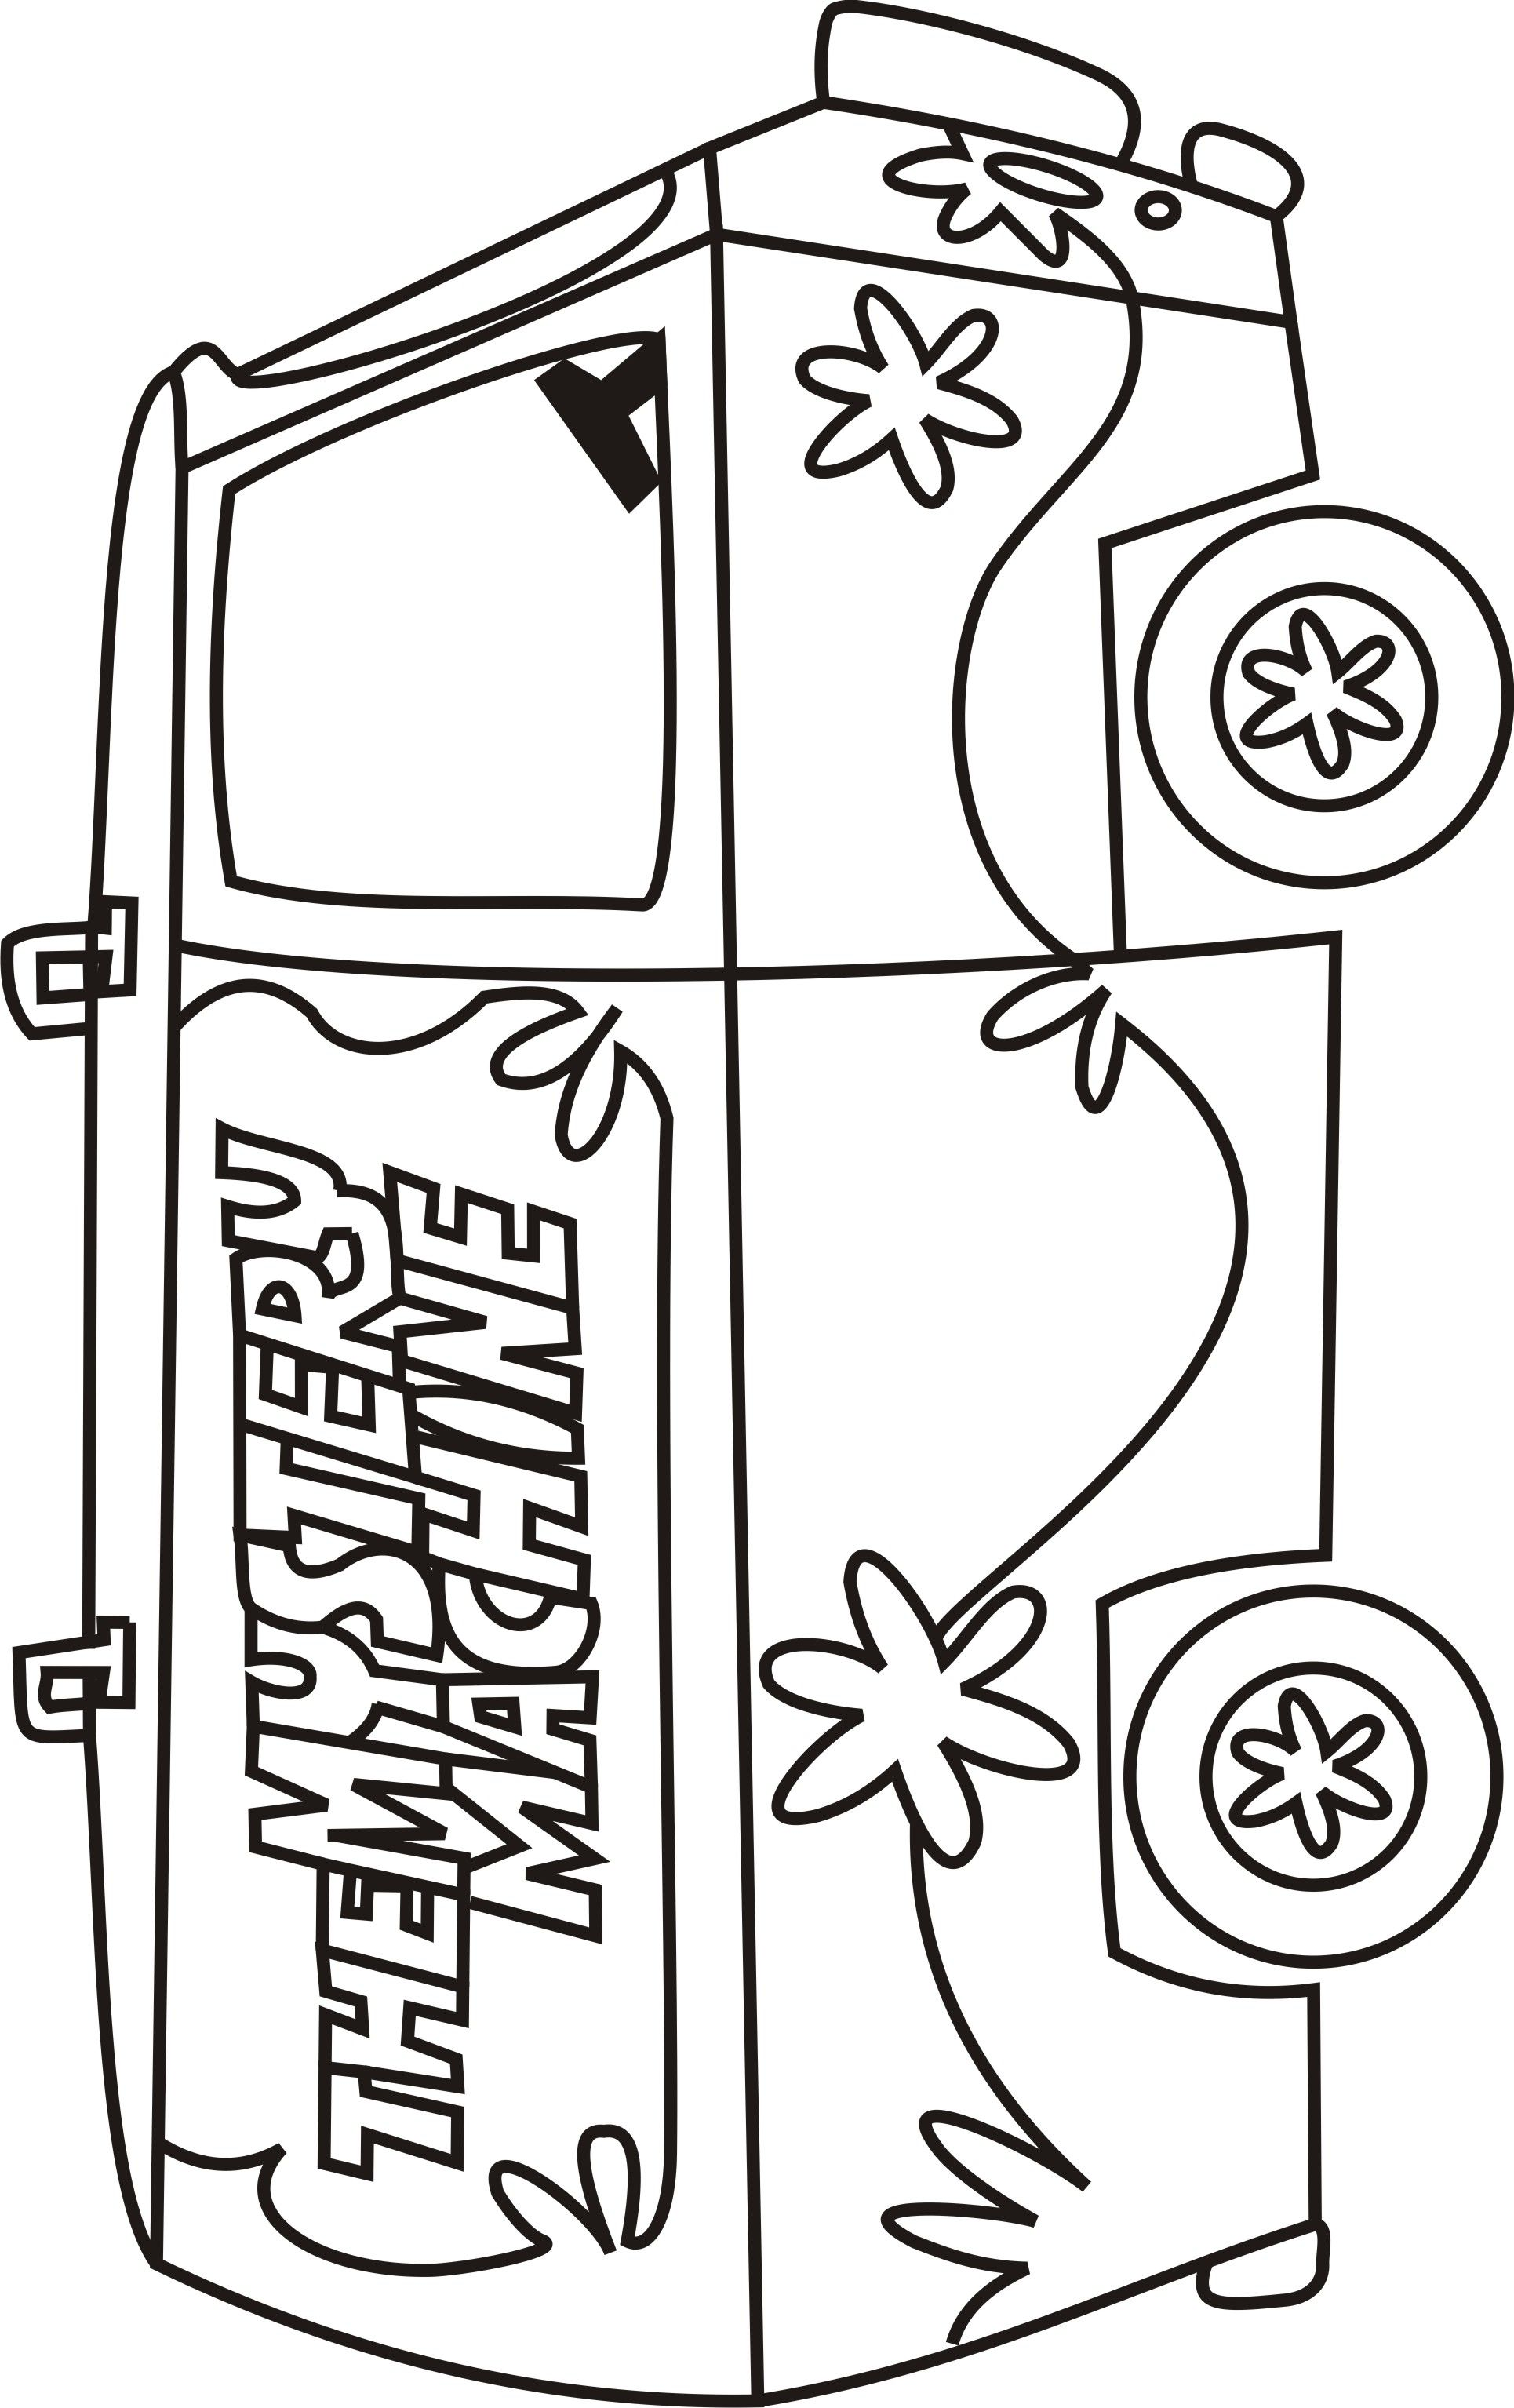 Mystery Machine Coloring Page : mystery, machine, coloring, Scooby, Mystery, Machine, Coloring, Pages, Pages,, Mystery,, Birthday, Party